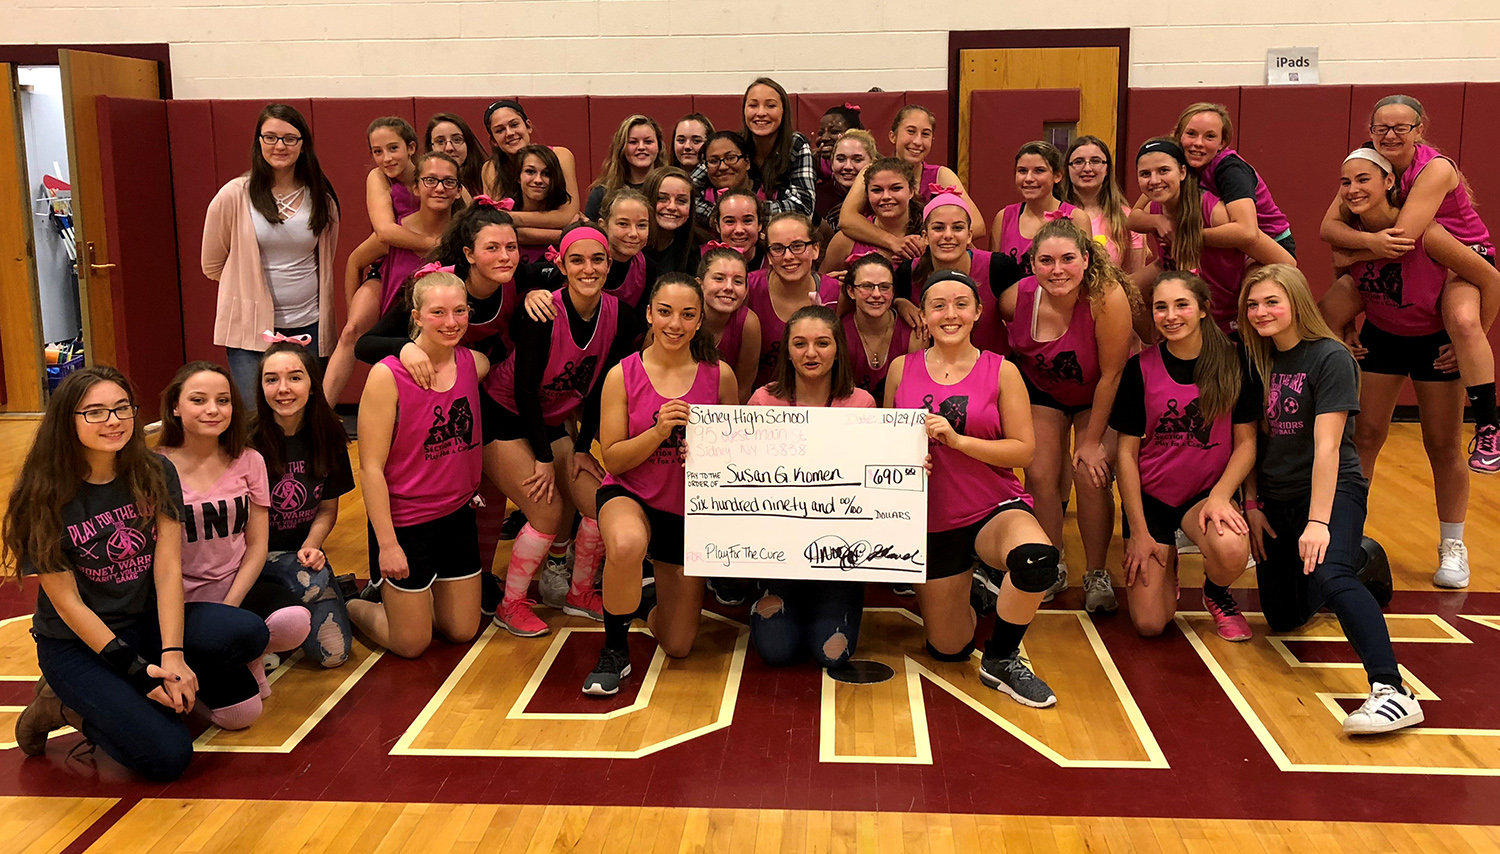 Charity volleyball game